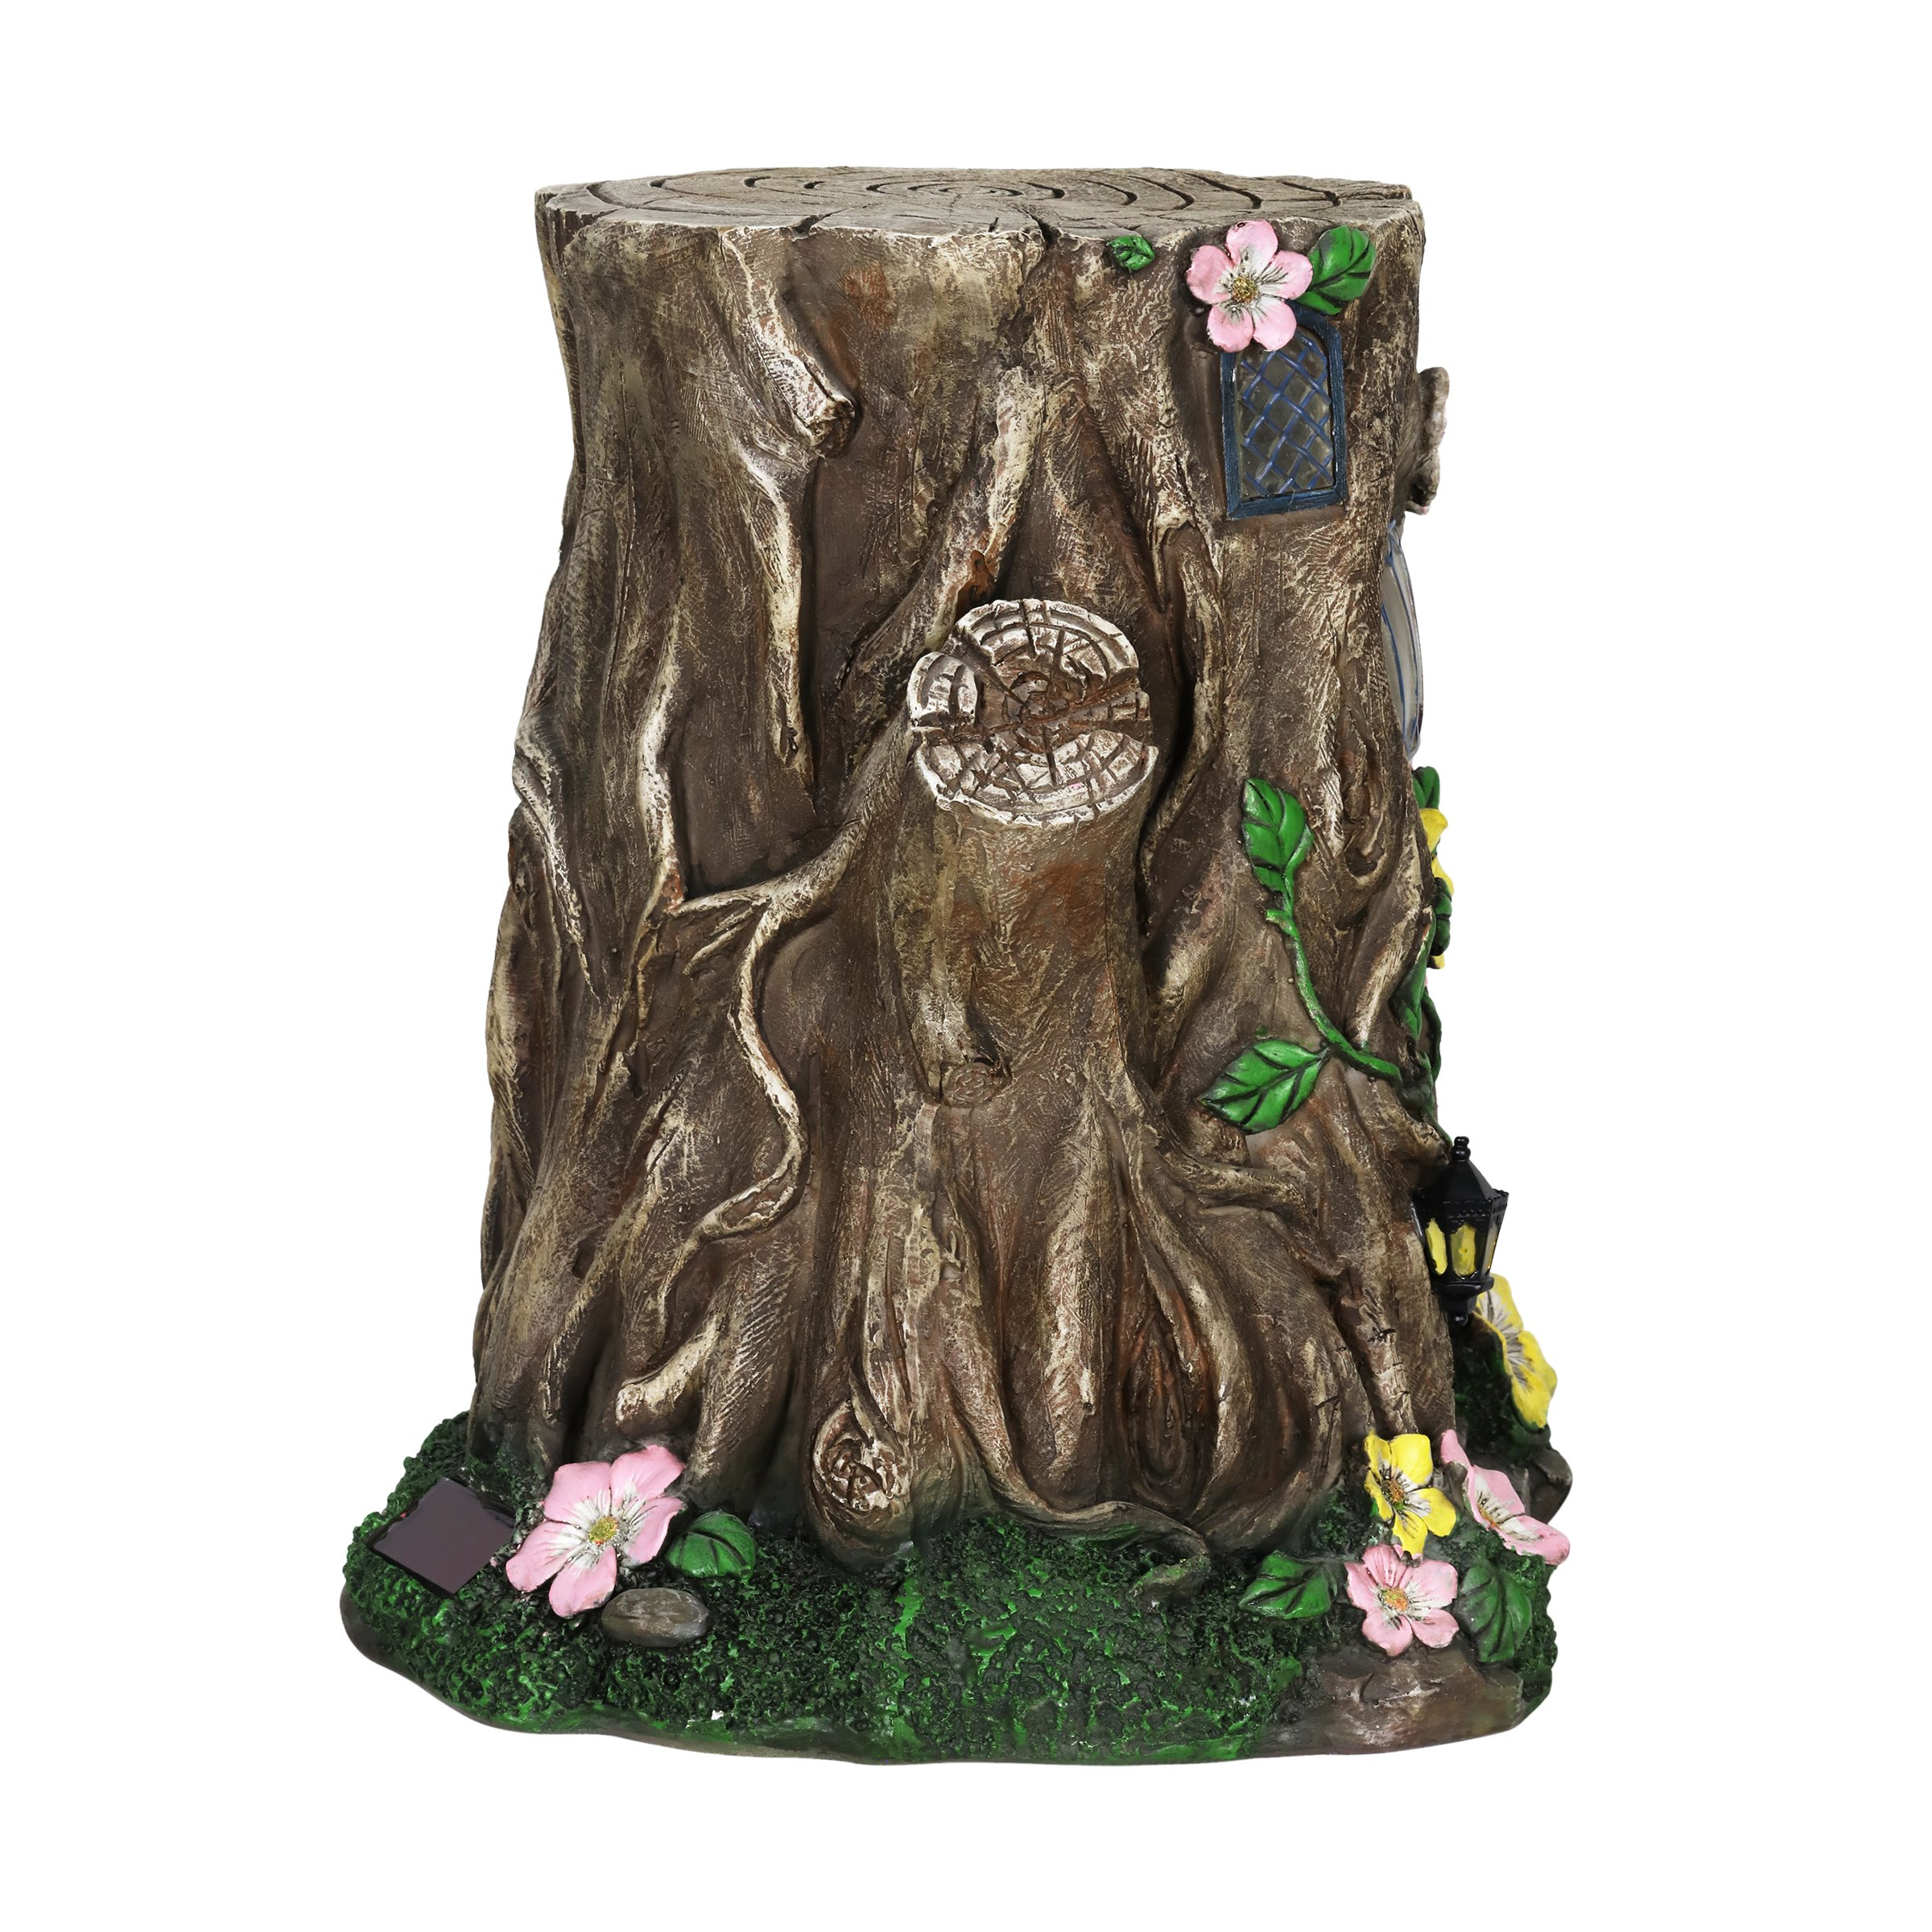 Exhart Gardening Gifts –Fairy House Tree Stump Statue - Large Garden Statues w/Solar Garden Lights, Outdoor Use, Fairy Themed Garden Décor, Weather Resistant Resin Statues by Exhart (Image #7)